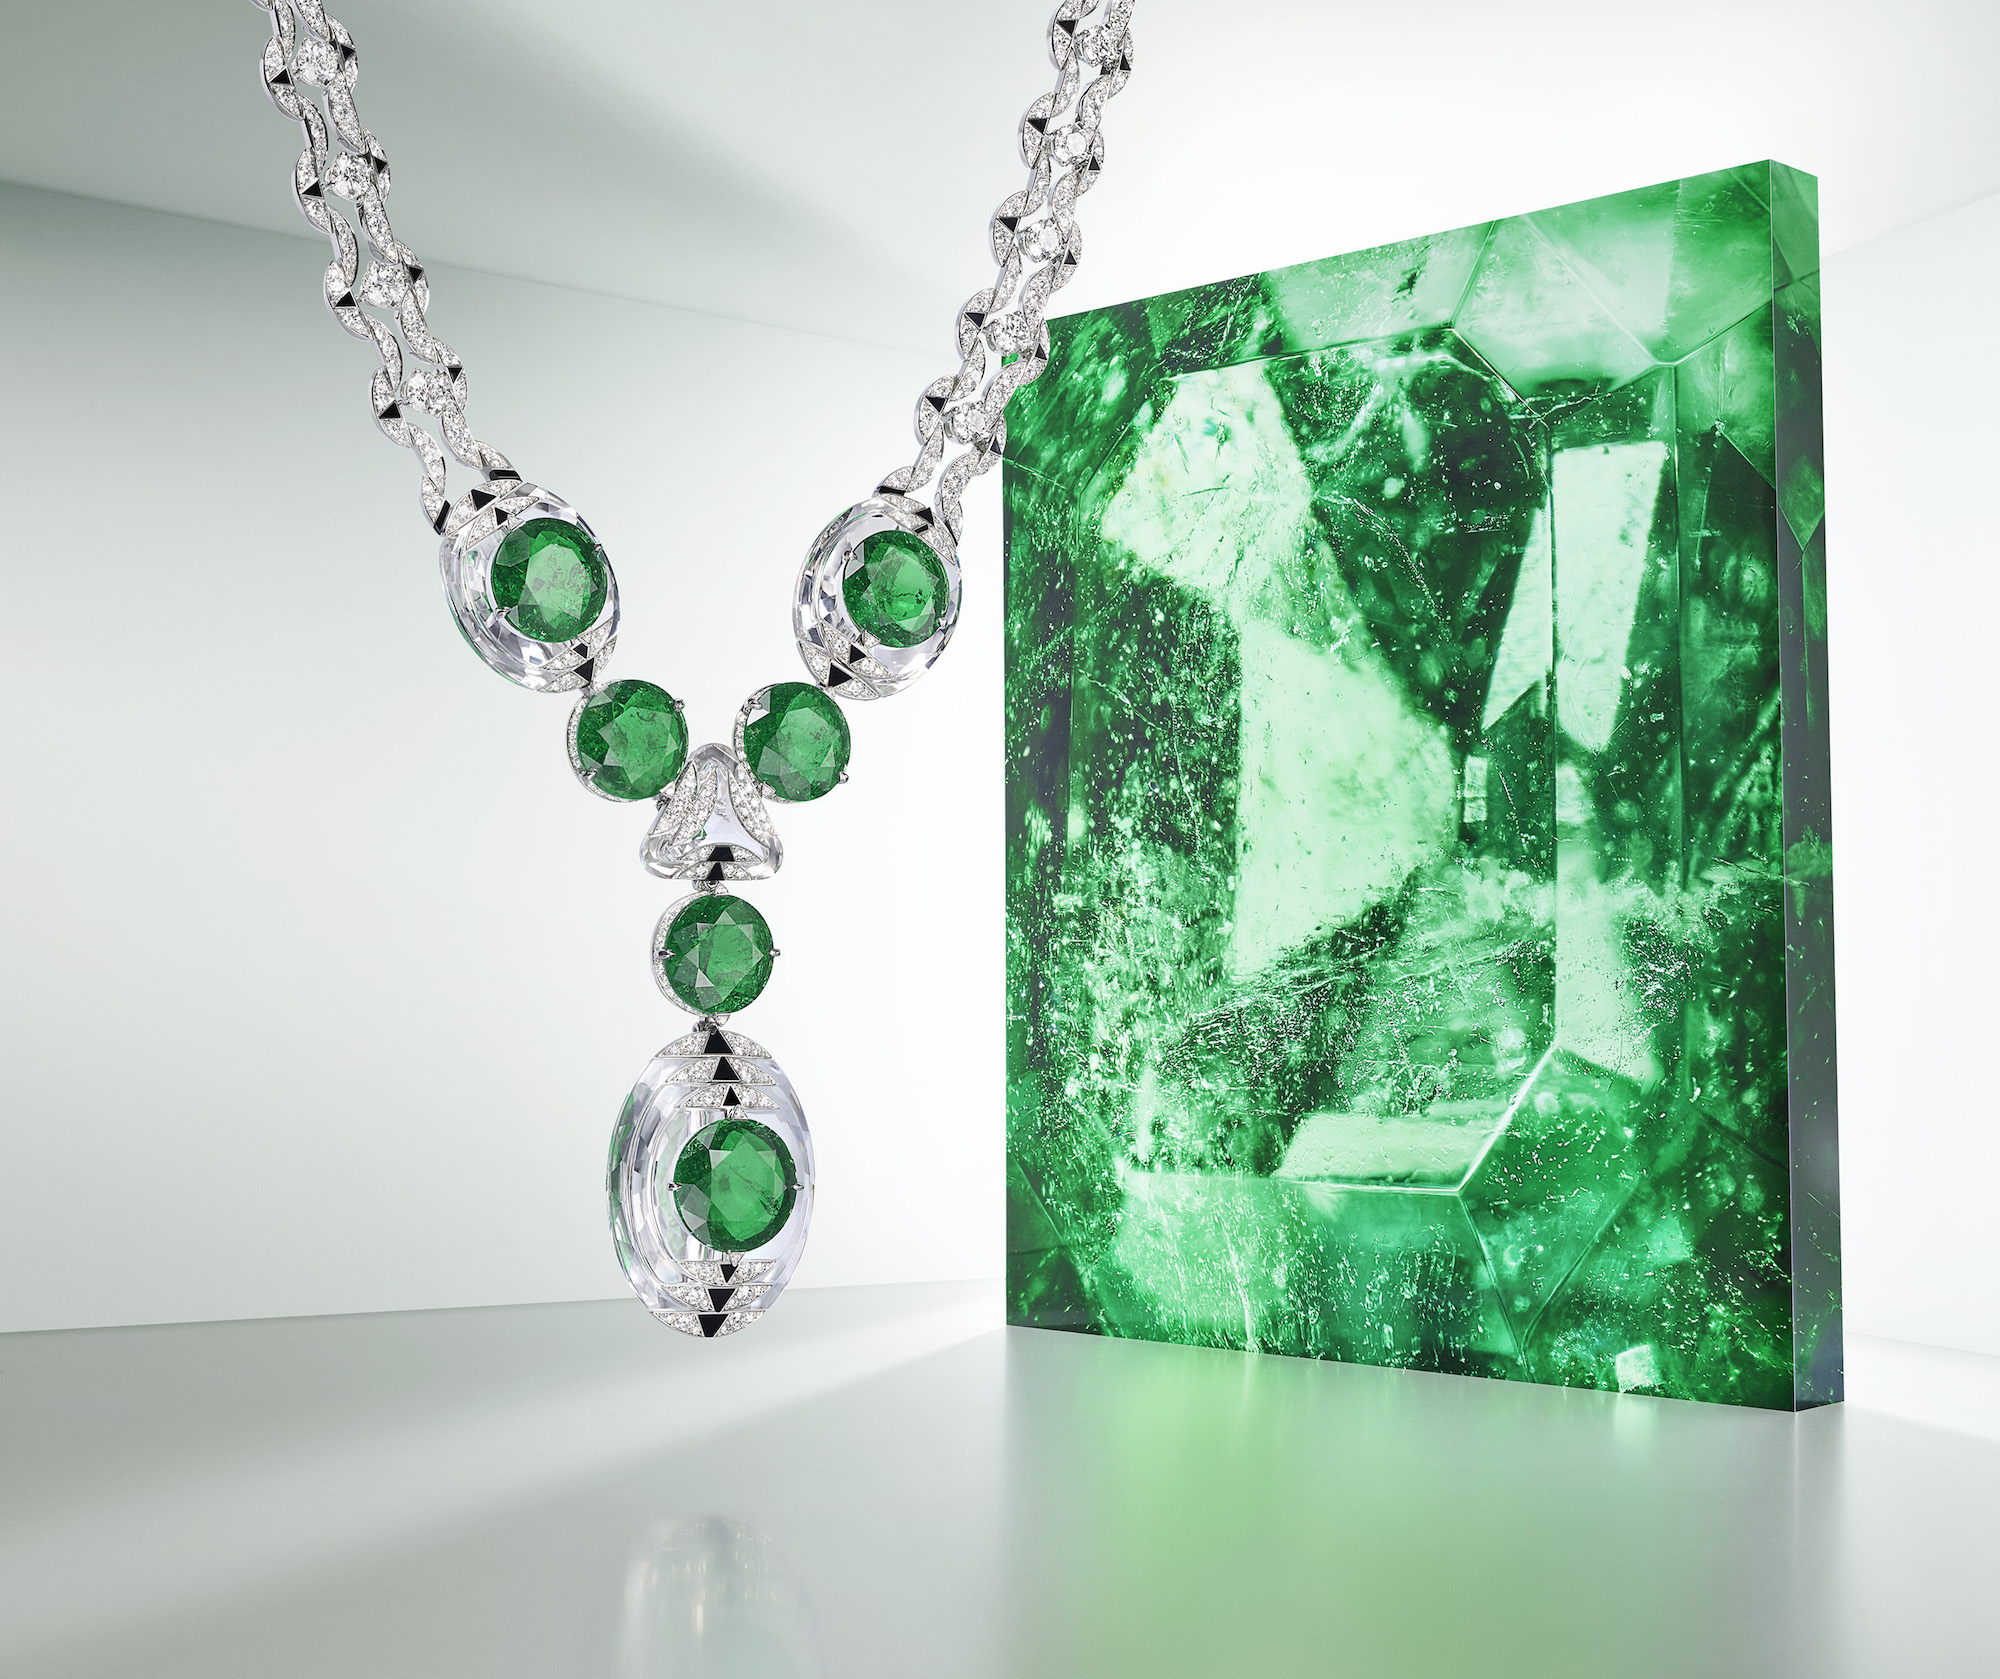 Cartier Magnitude high jewellery collection emerald necklace press shot